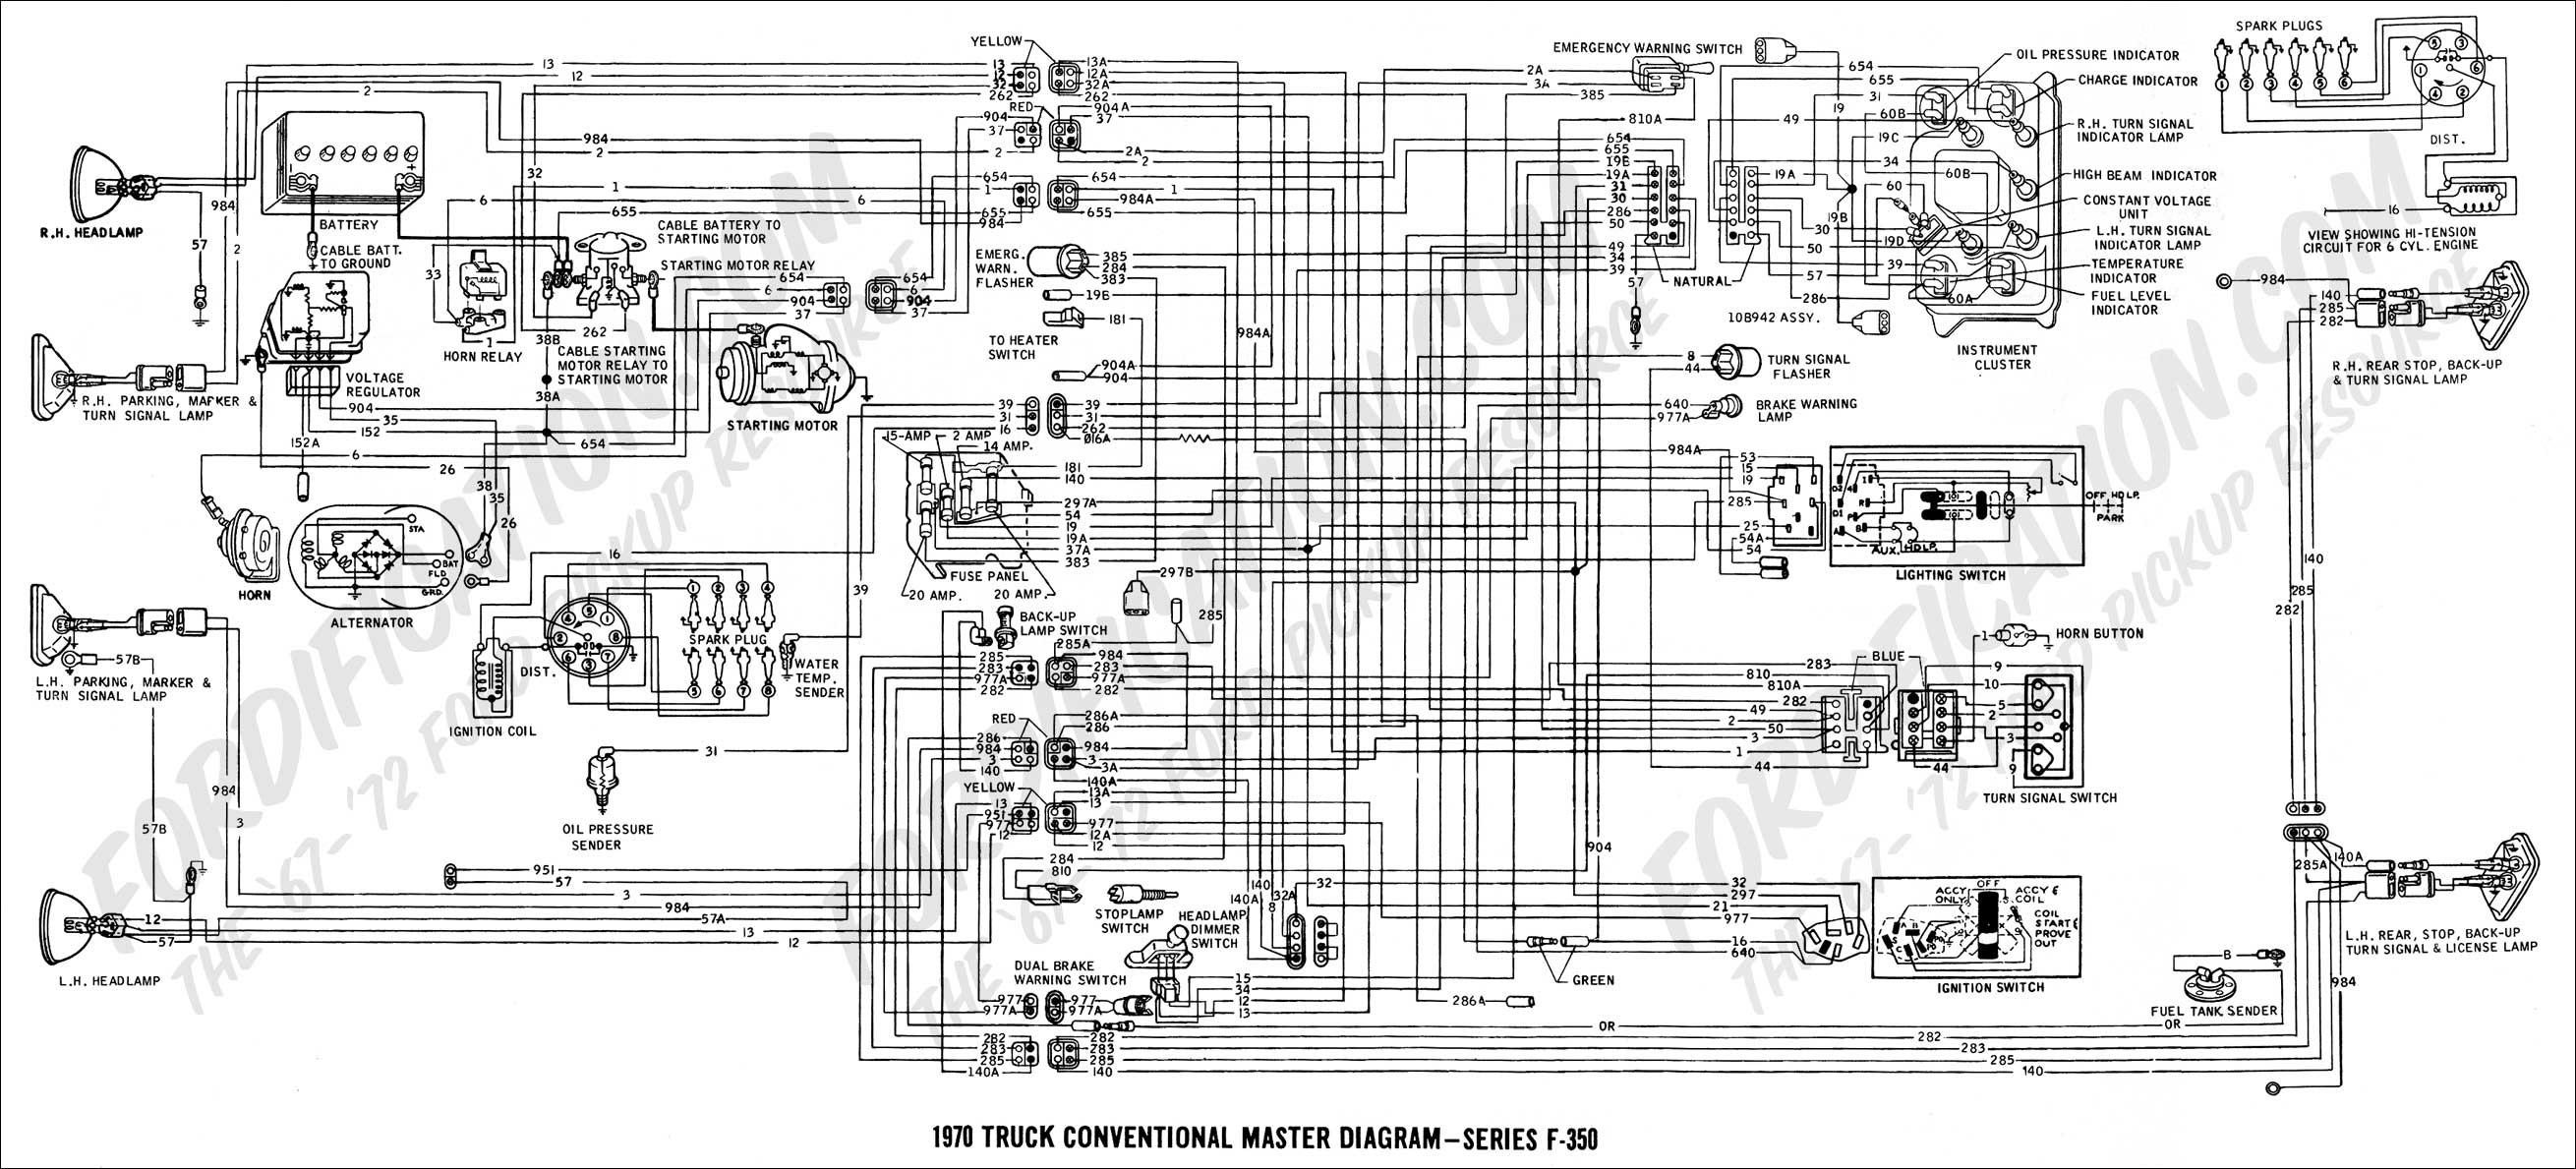 2008 Ford F 250 Wiring Schematic - Wiring Diagrams Thumbs - 2001 F150 Trailer Wiring Diagram